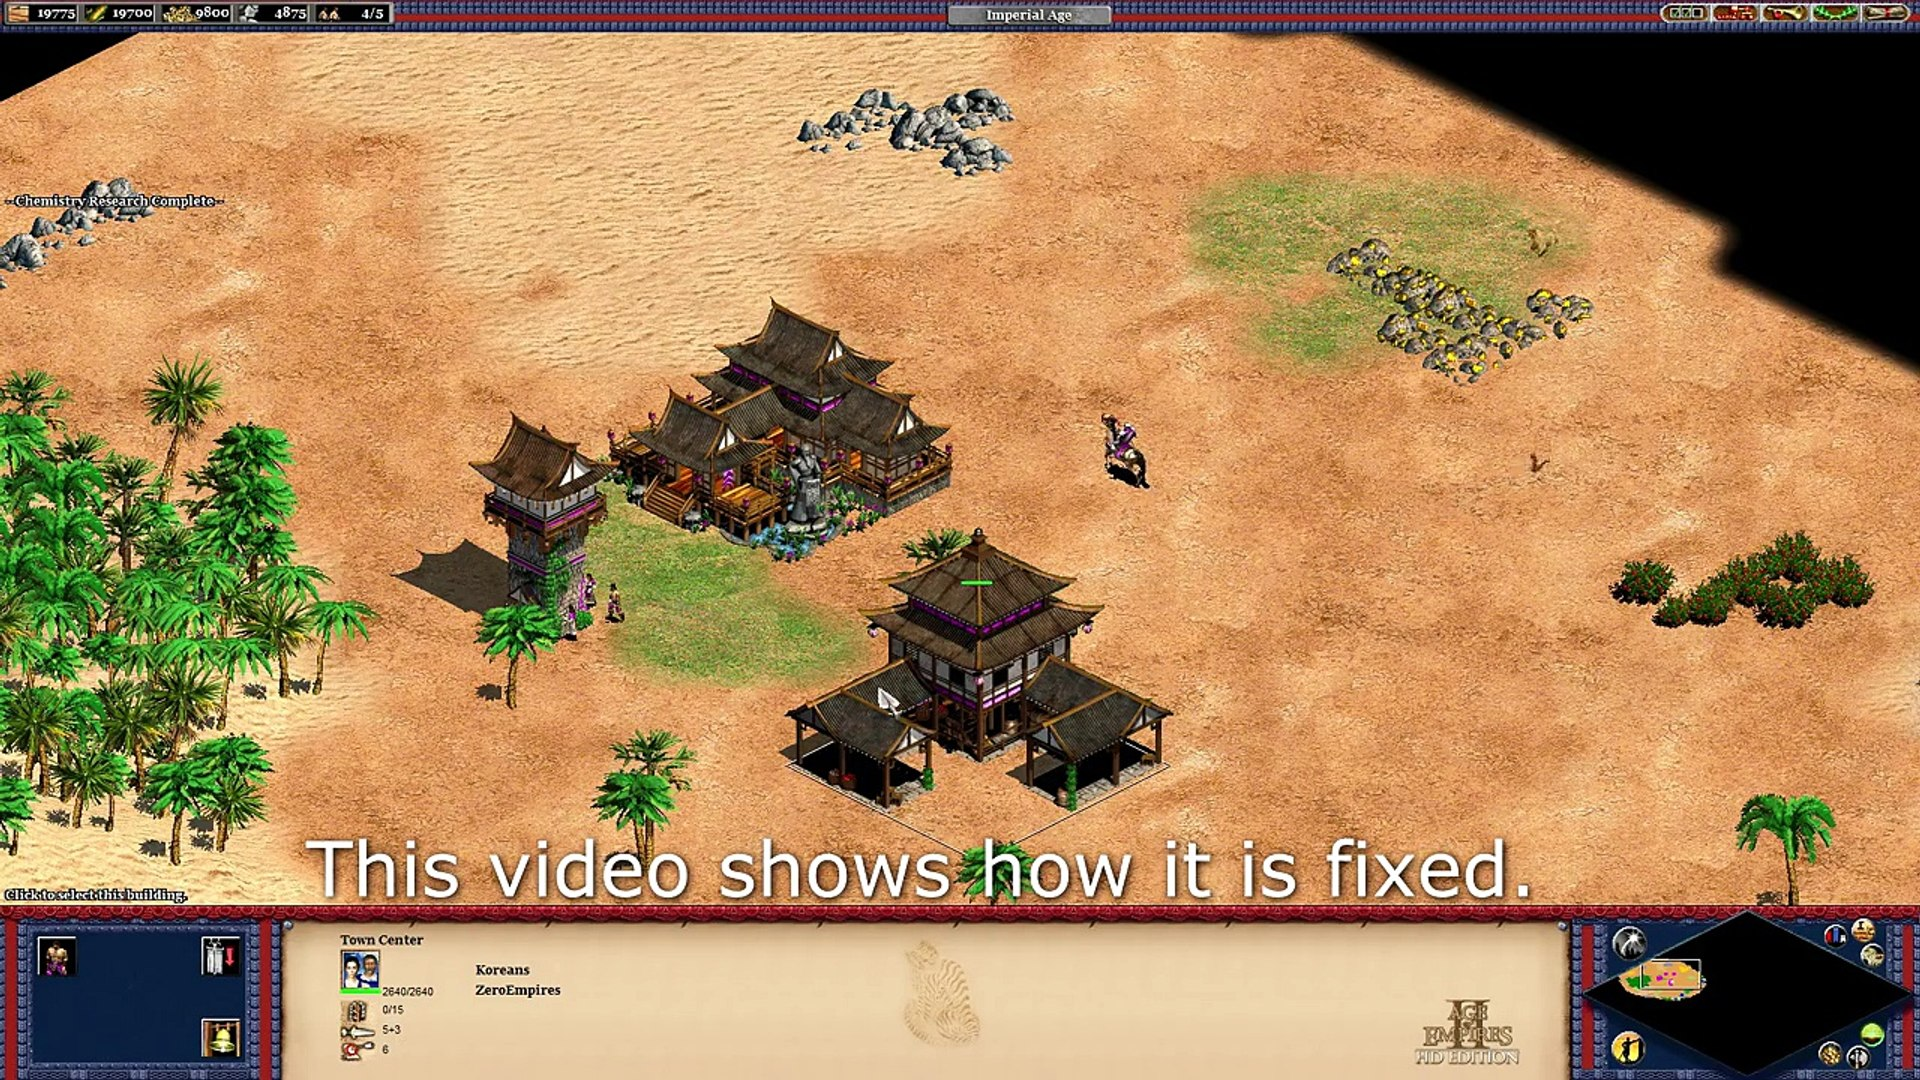 Glitches & Bugs in AoE2